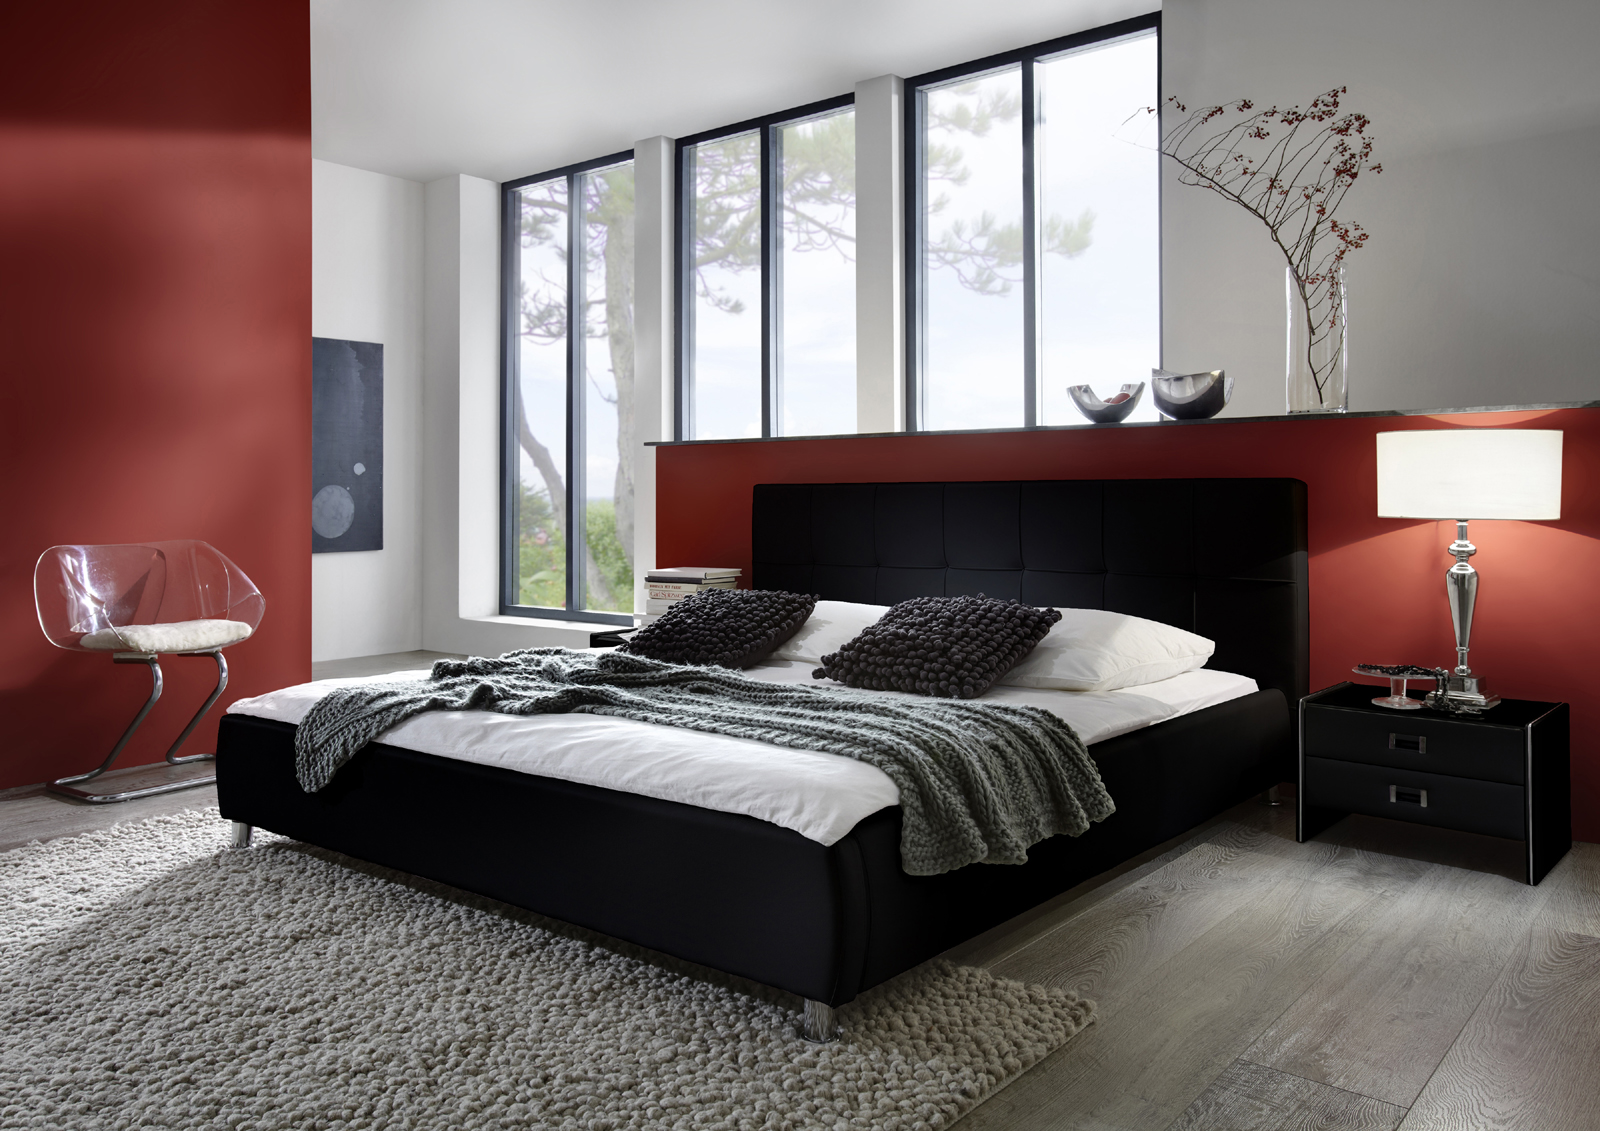 sam polsterbett 180x200 cm schwarz bettgestell g nstig zarah demn chst. Black Bedroom Furniture Sets. Home Design Ideas